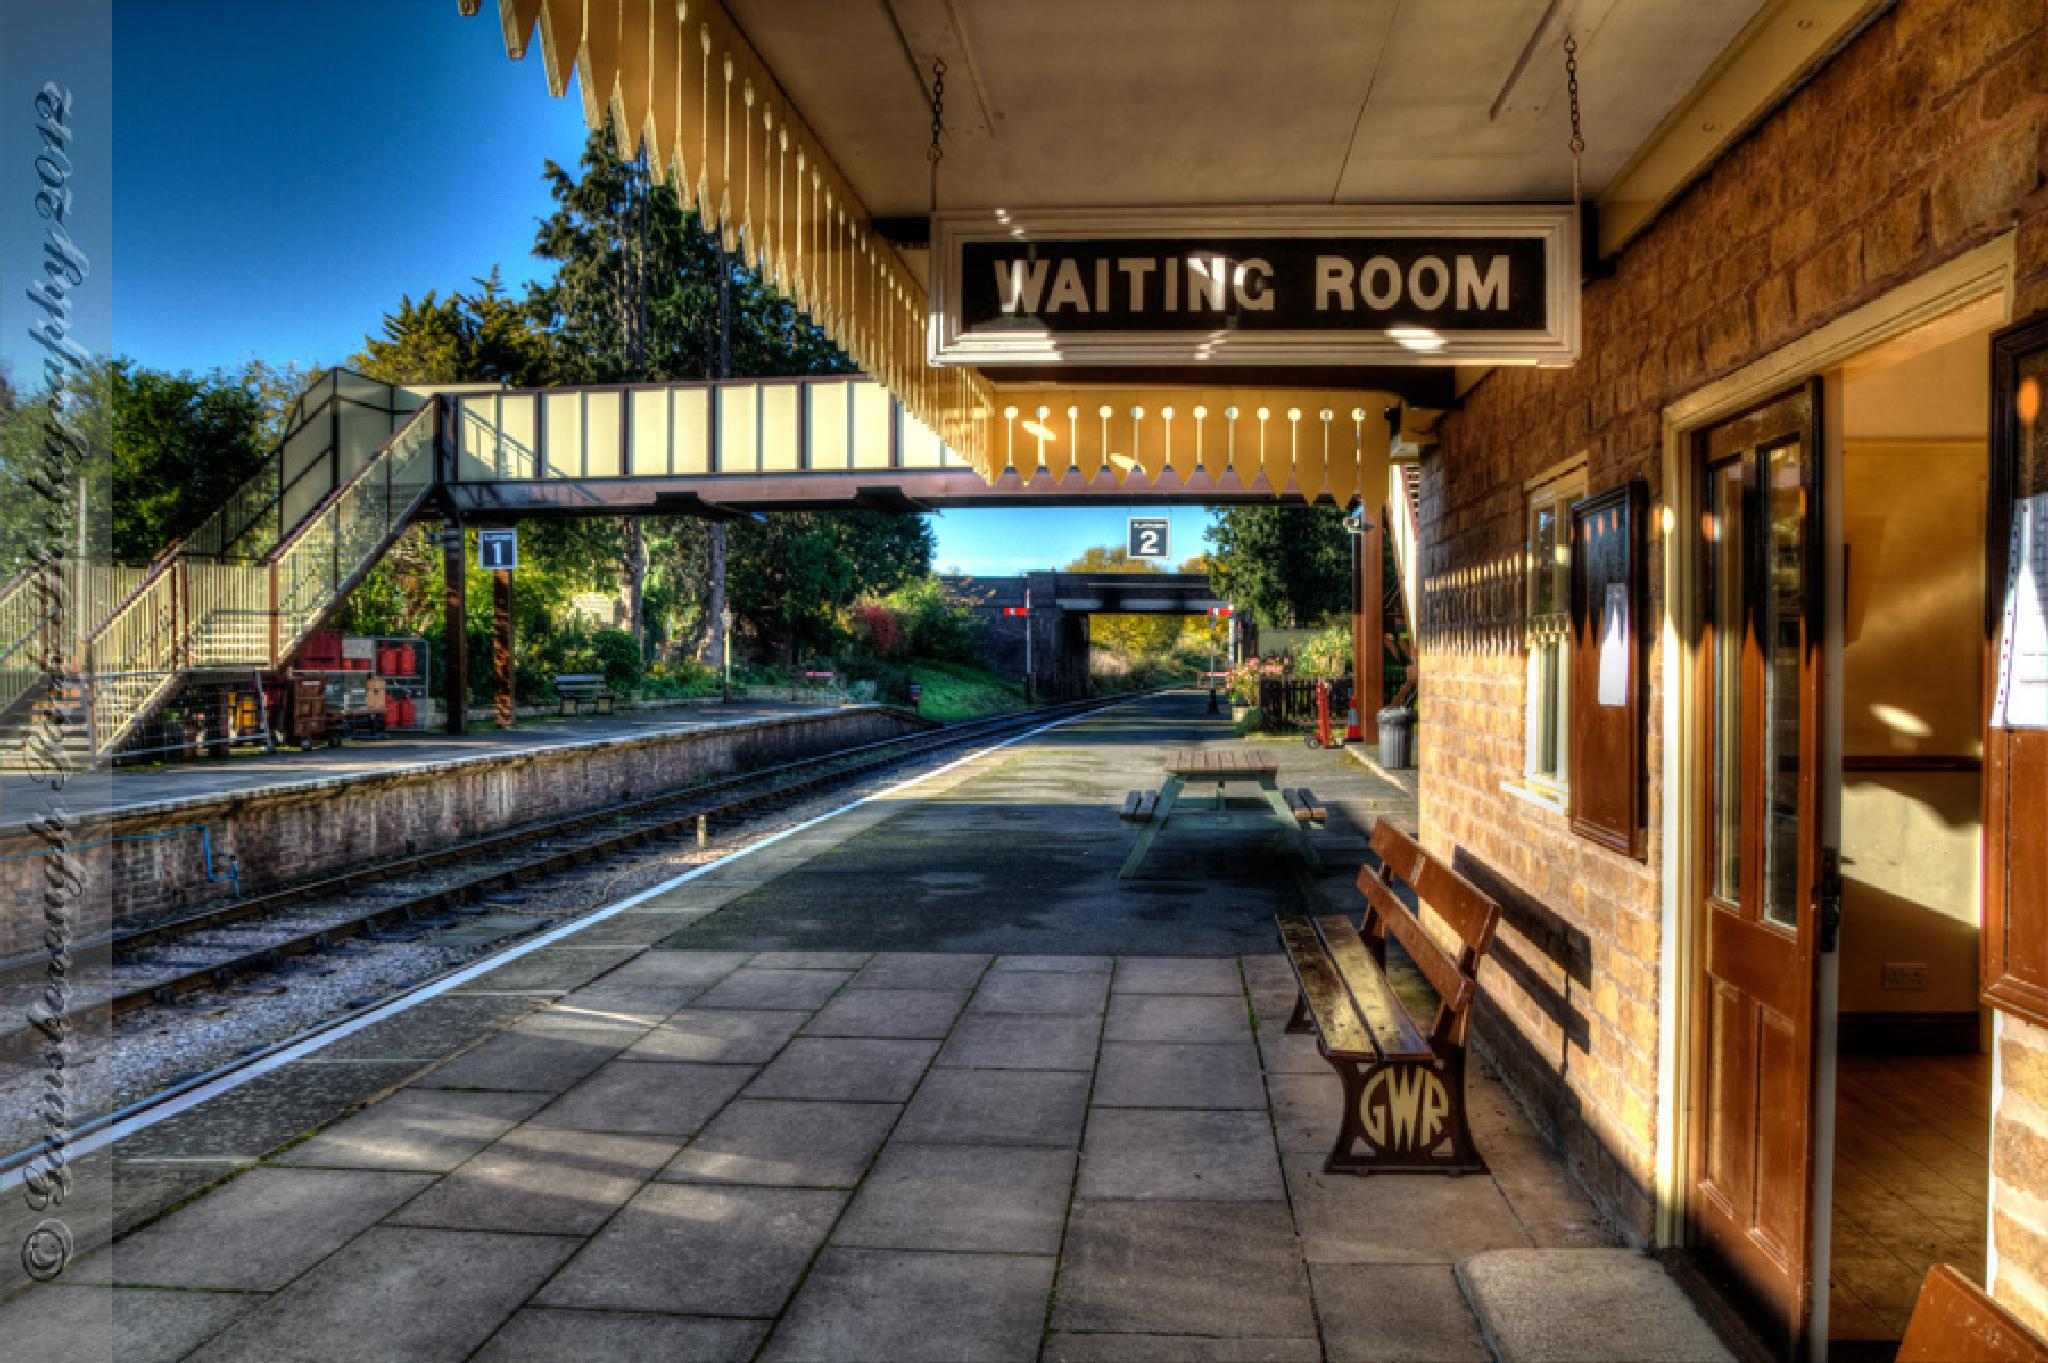 Winchcombe Station by Gainsborough Park Photography